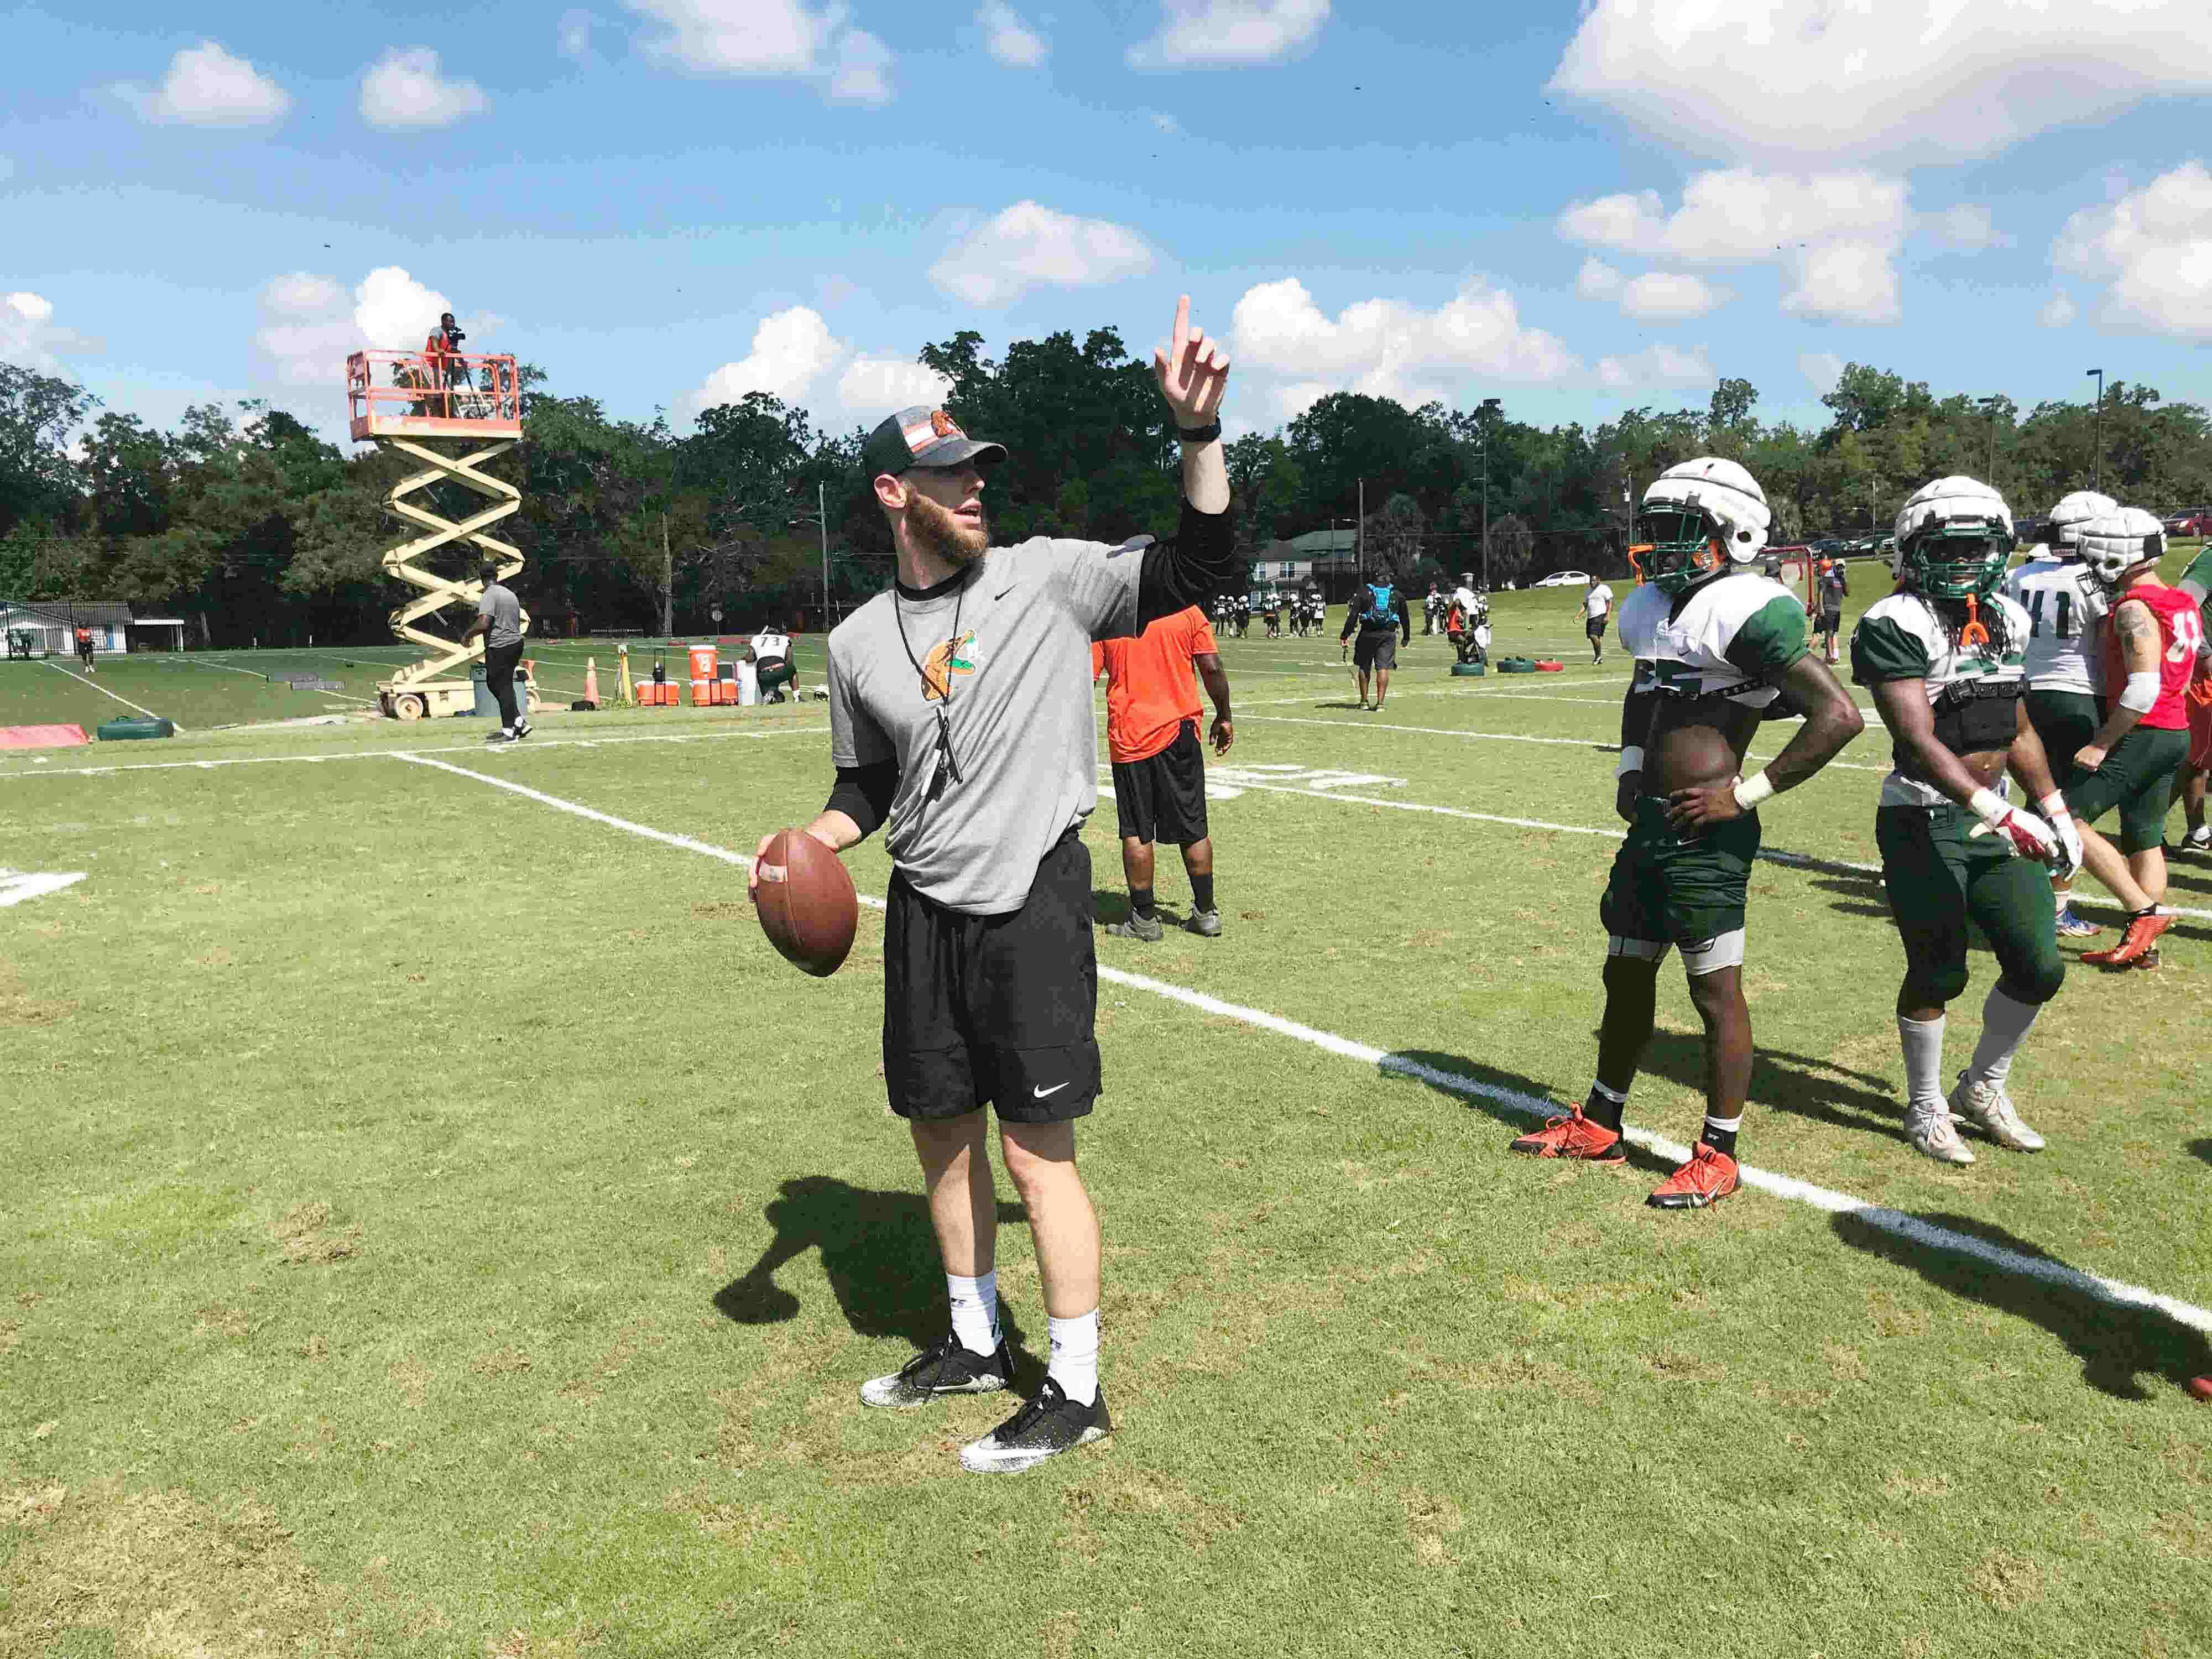 WATCH: Joseph Henry on resigning from FAMU and going to Missouri